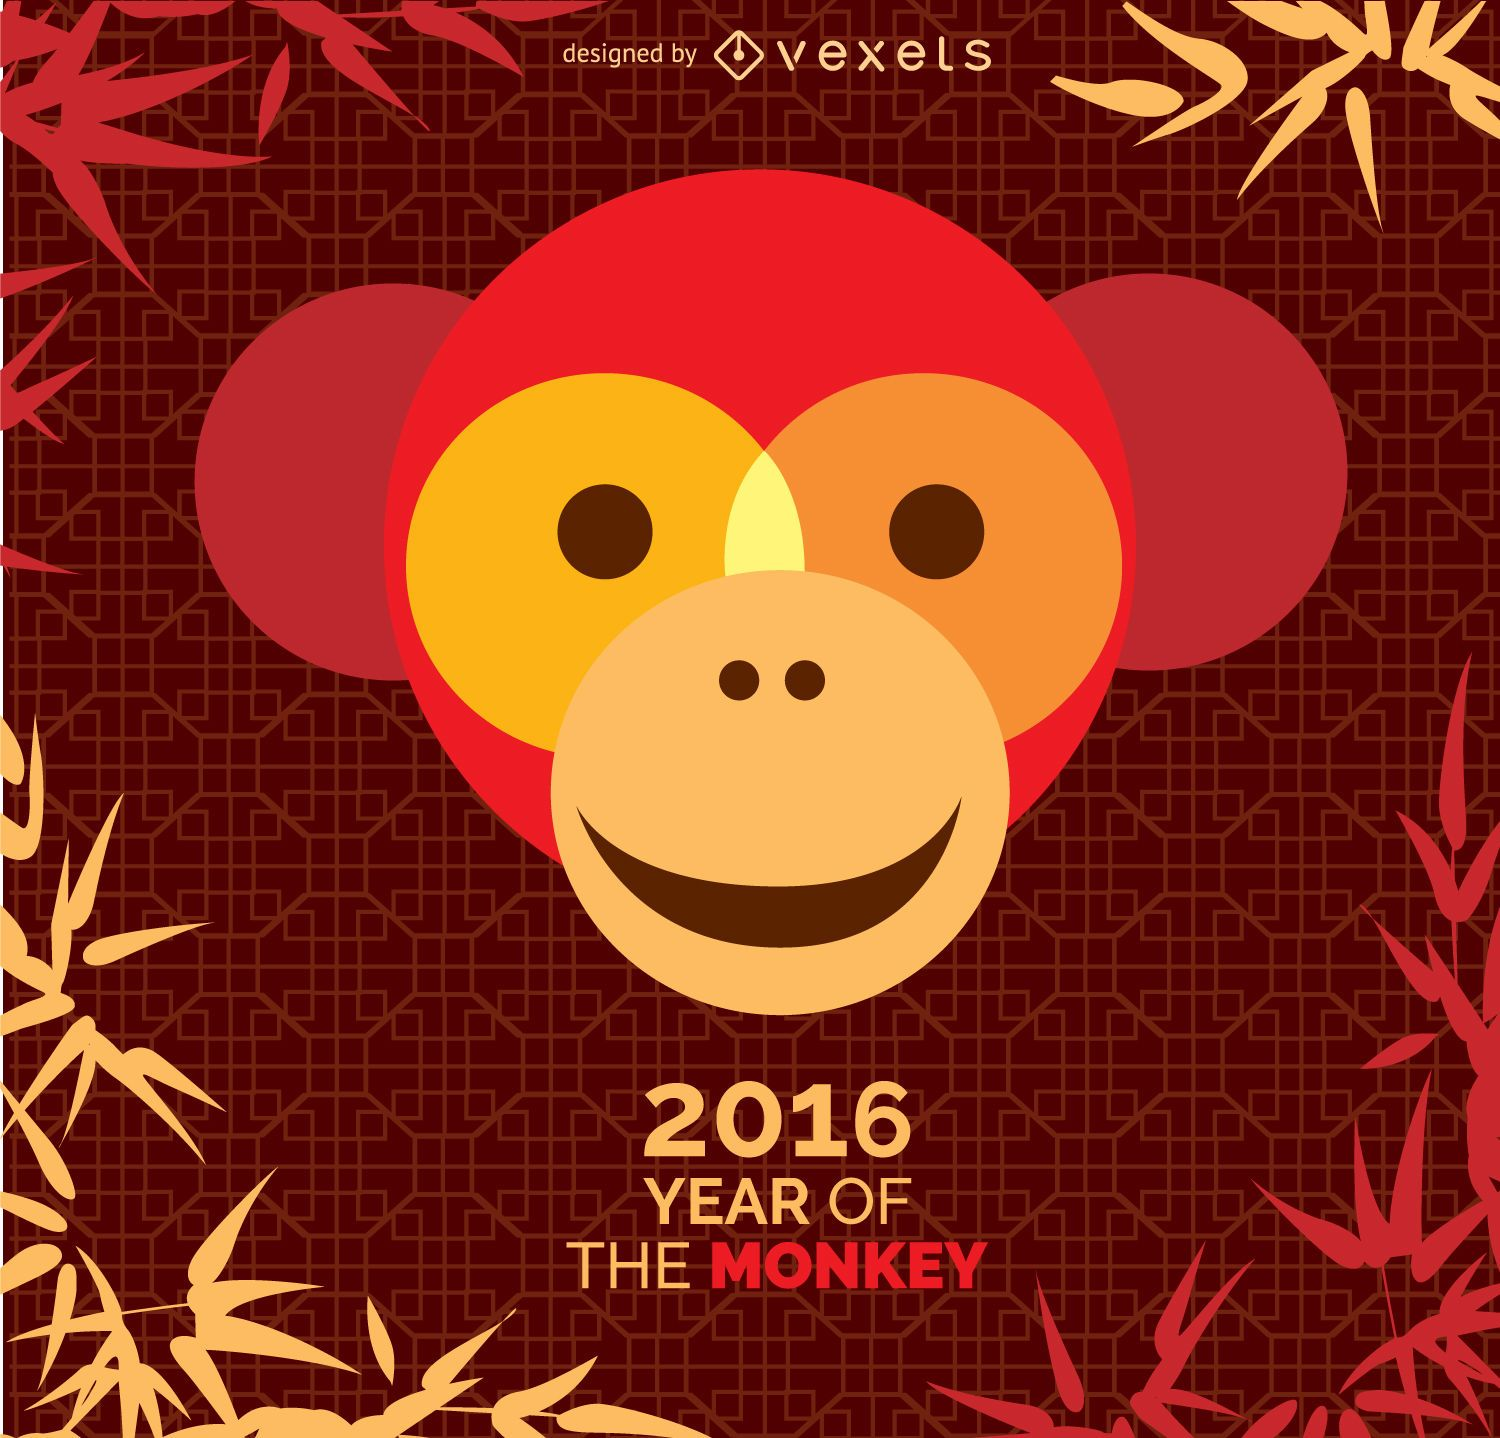 Year of the Monkey 2016 design